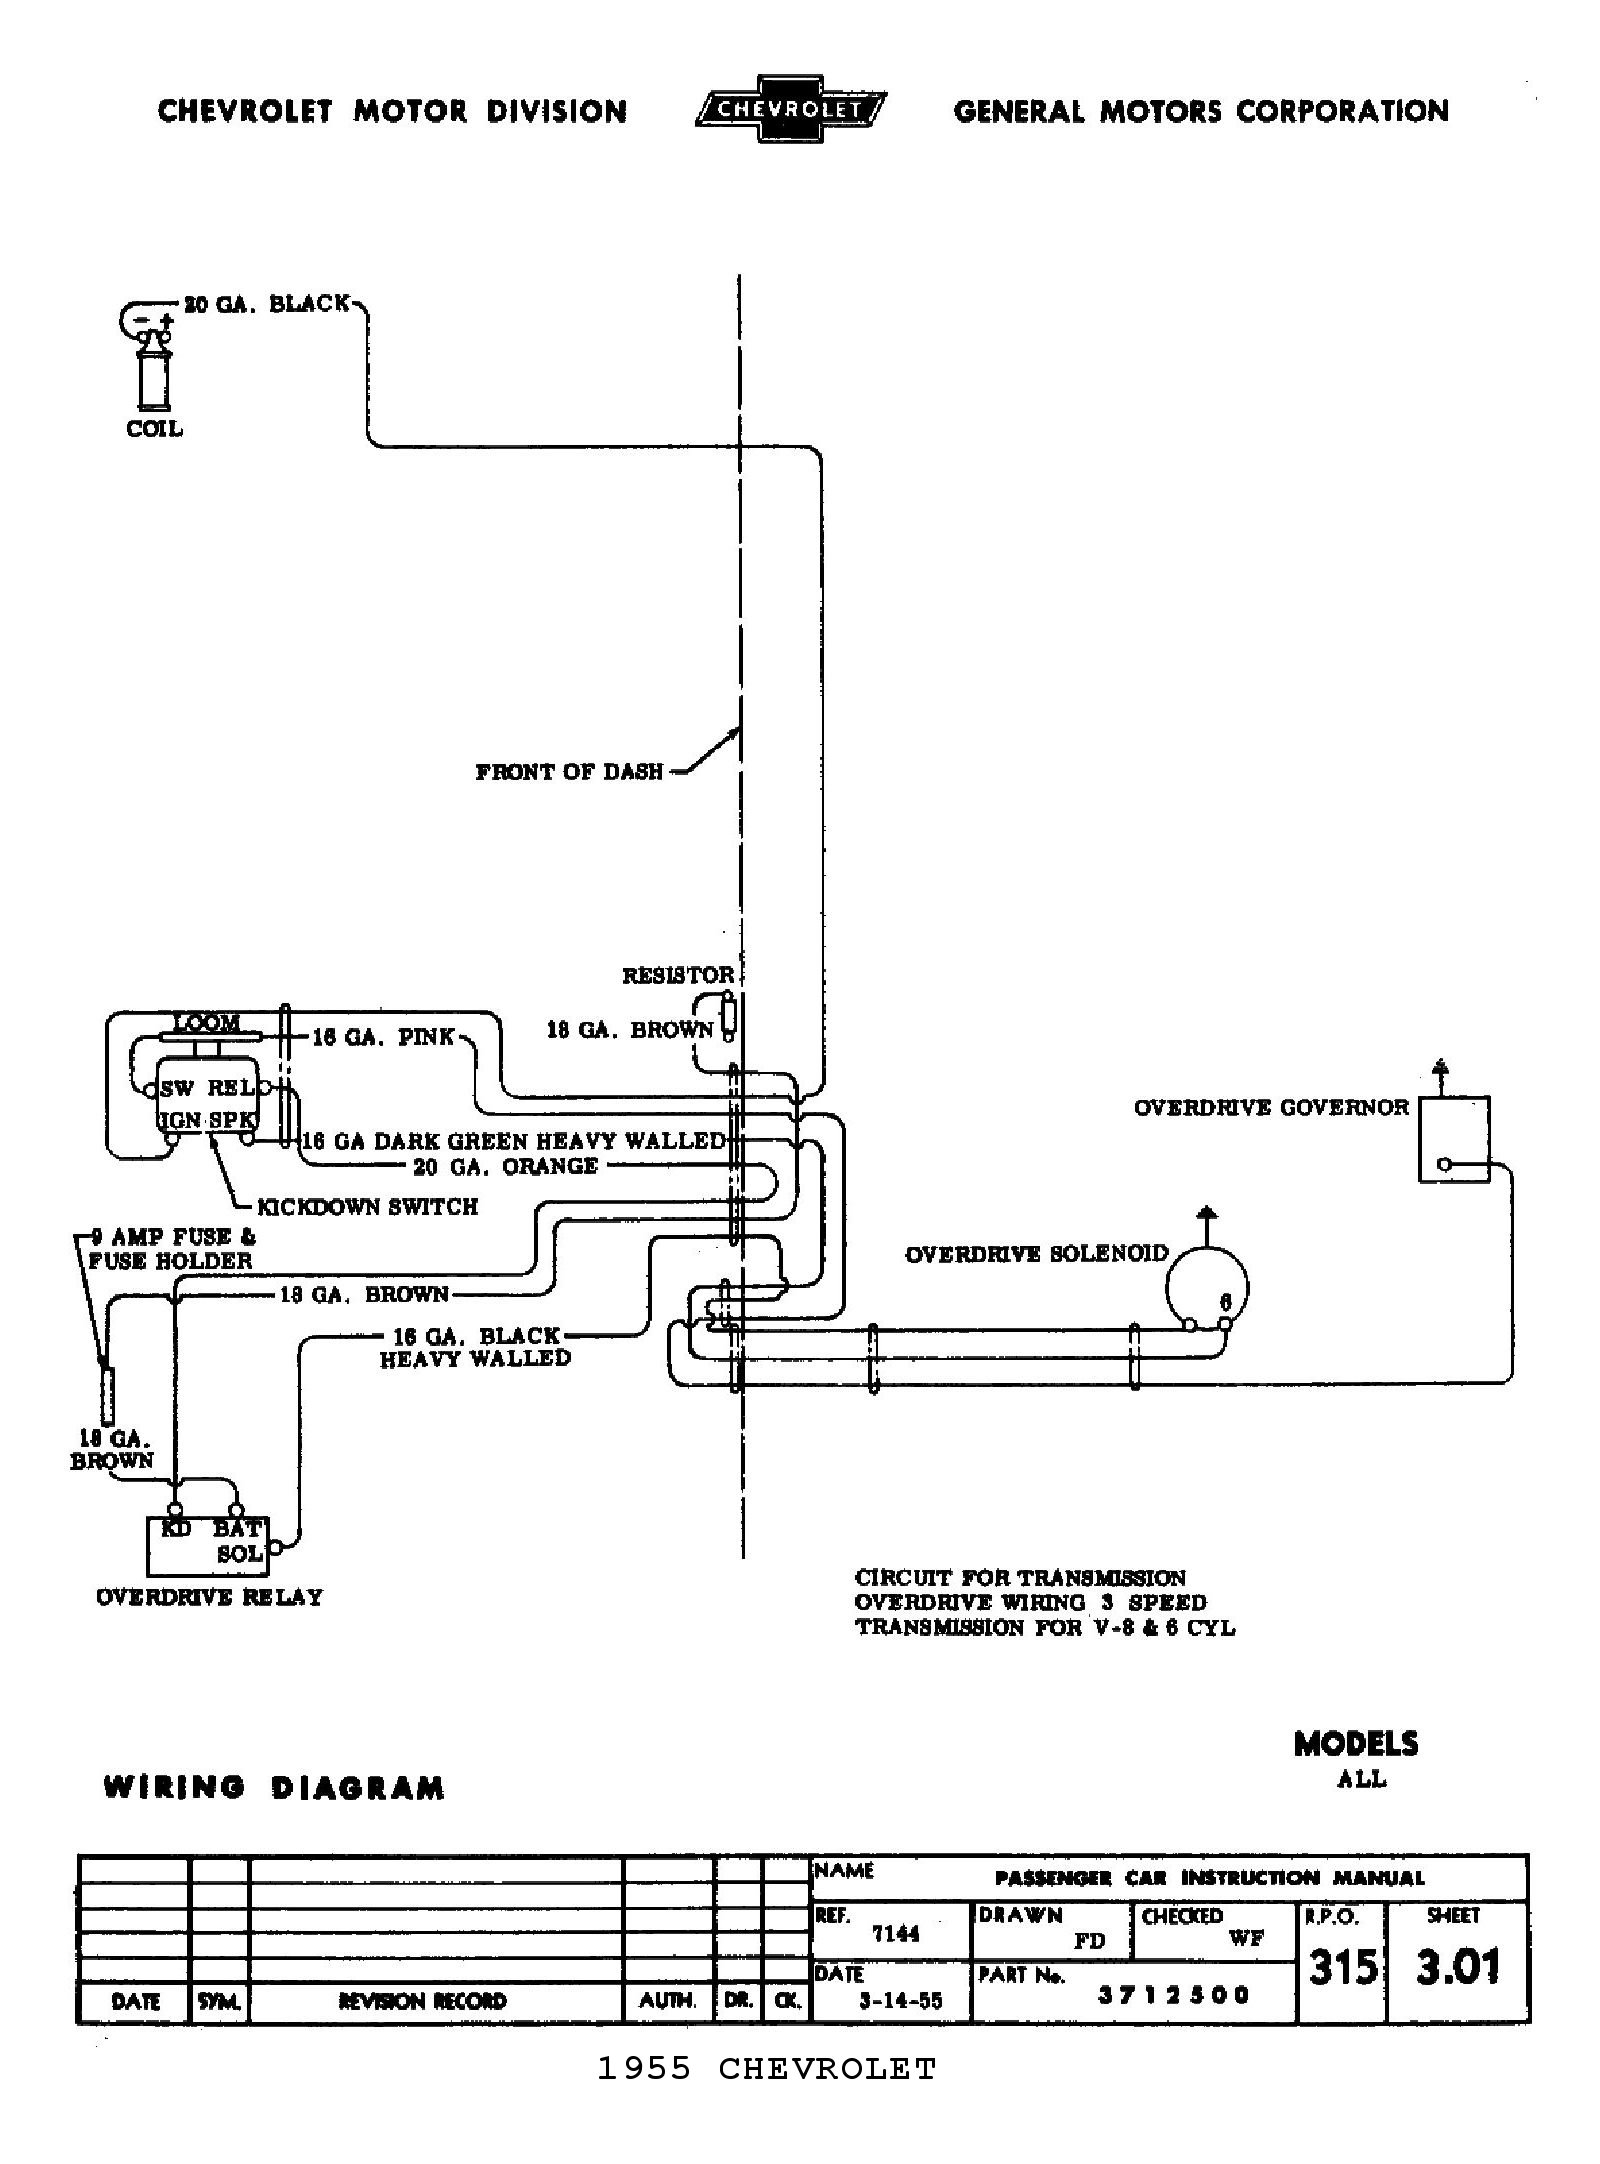 57 Chevy Ignition Switch Wiring Diagram from static-cdn.imageservice.cloud